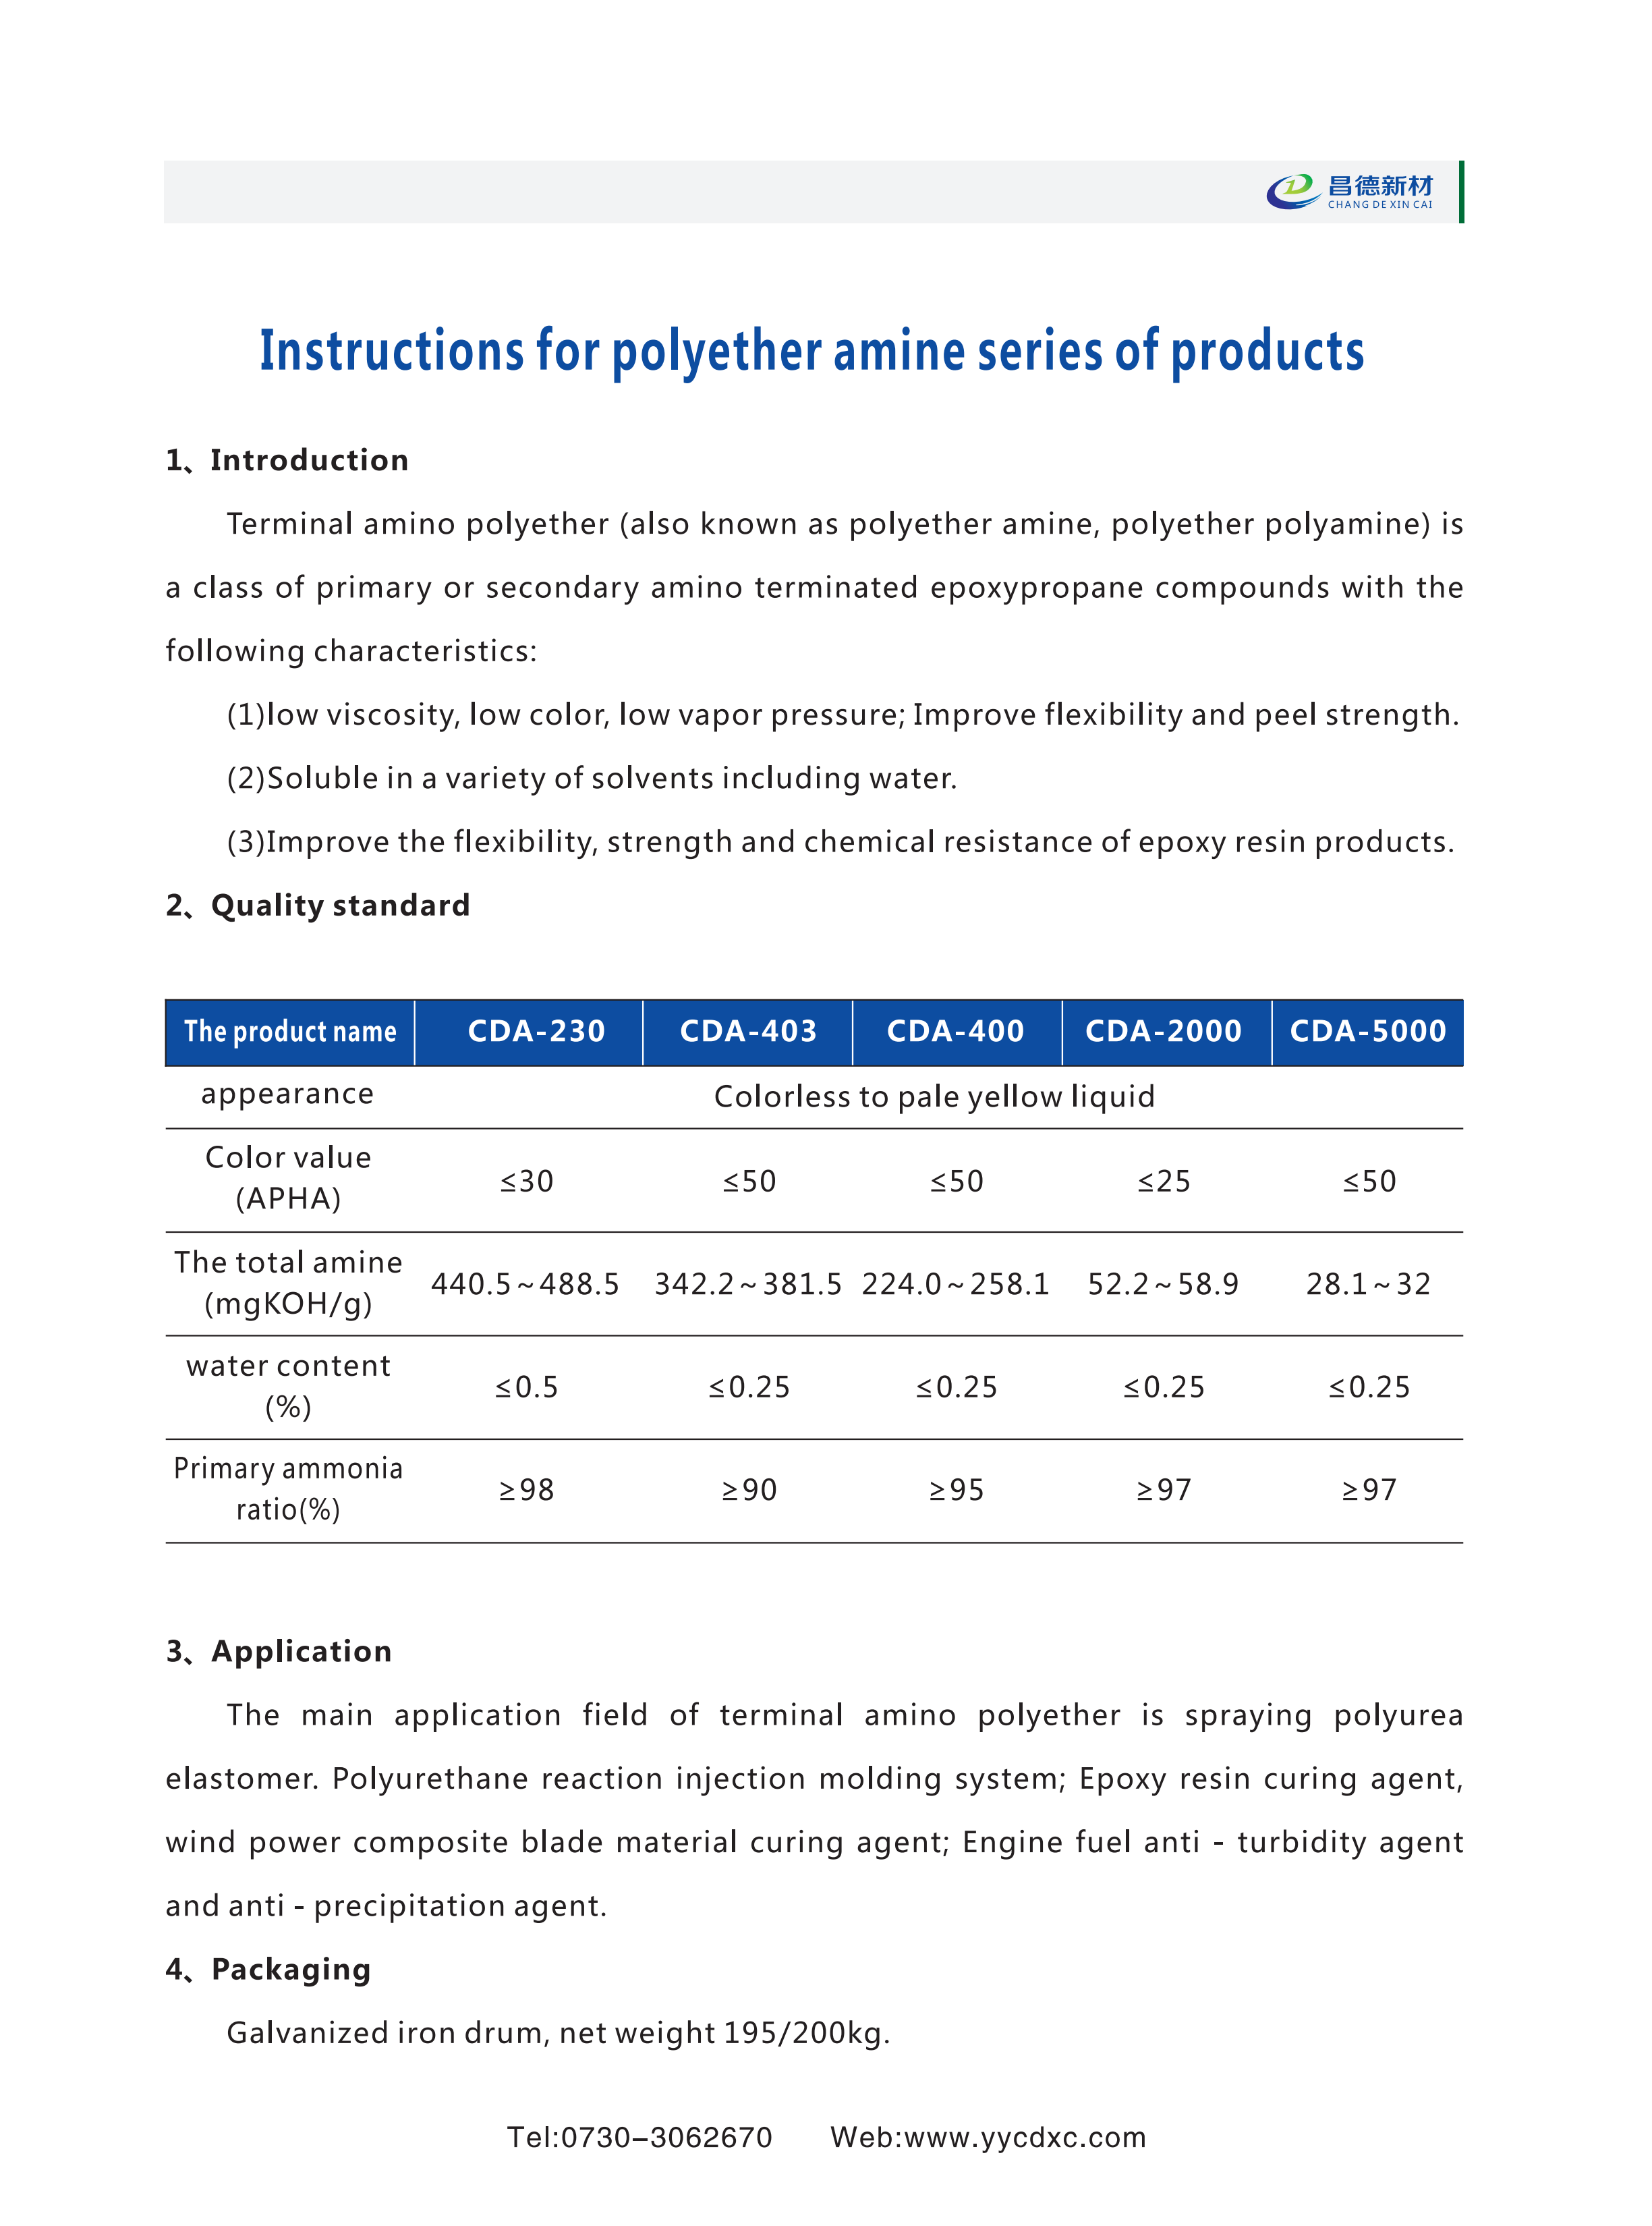 polyether amine series(图1)